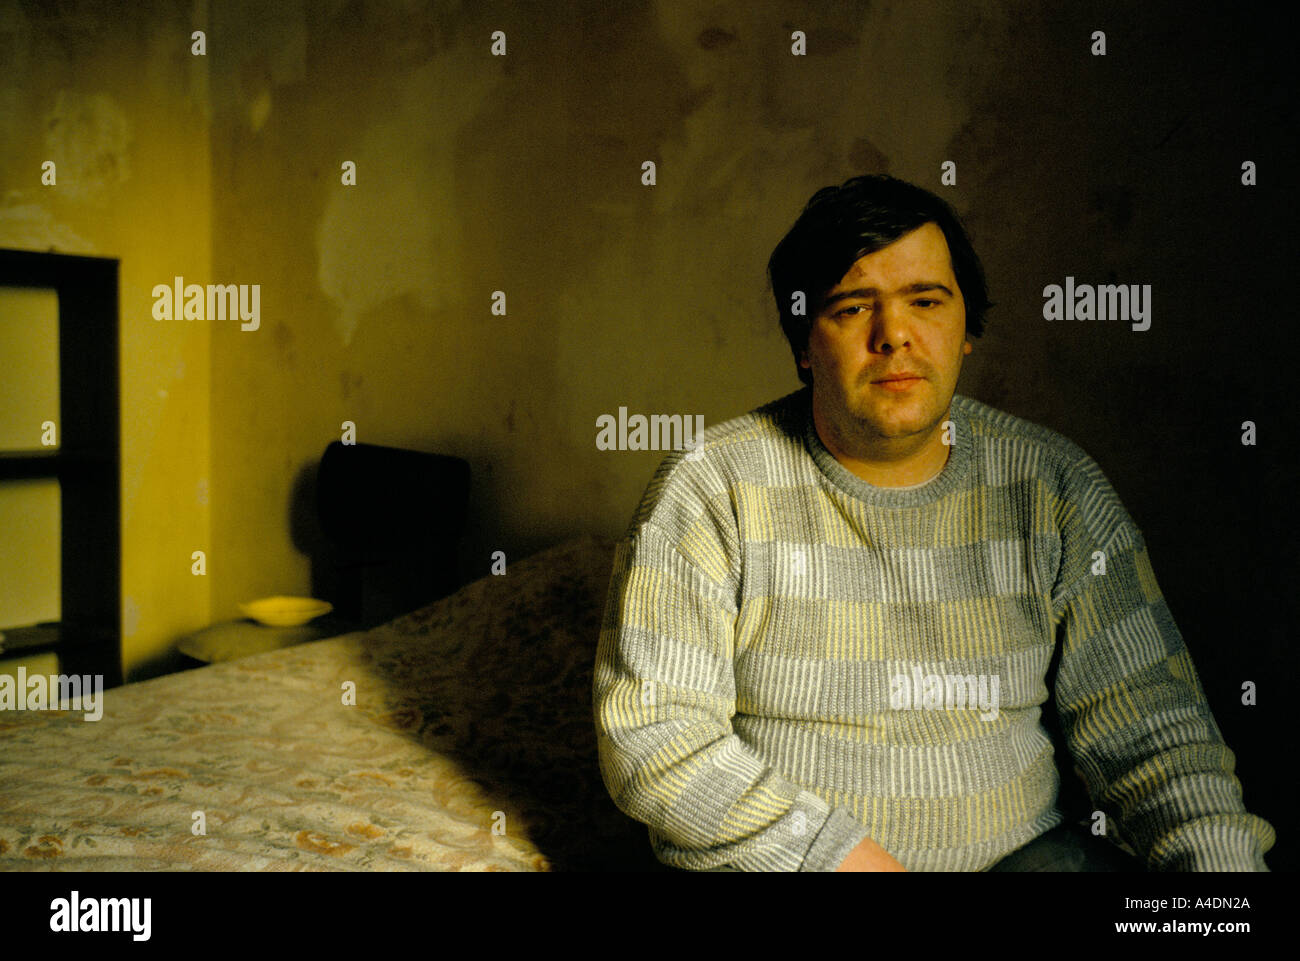 A man in poor housing, Glasgow, Scotland - Stock Image